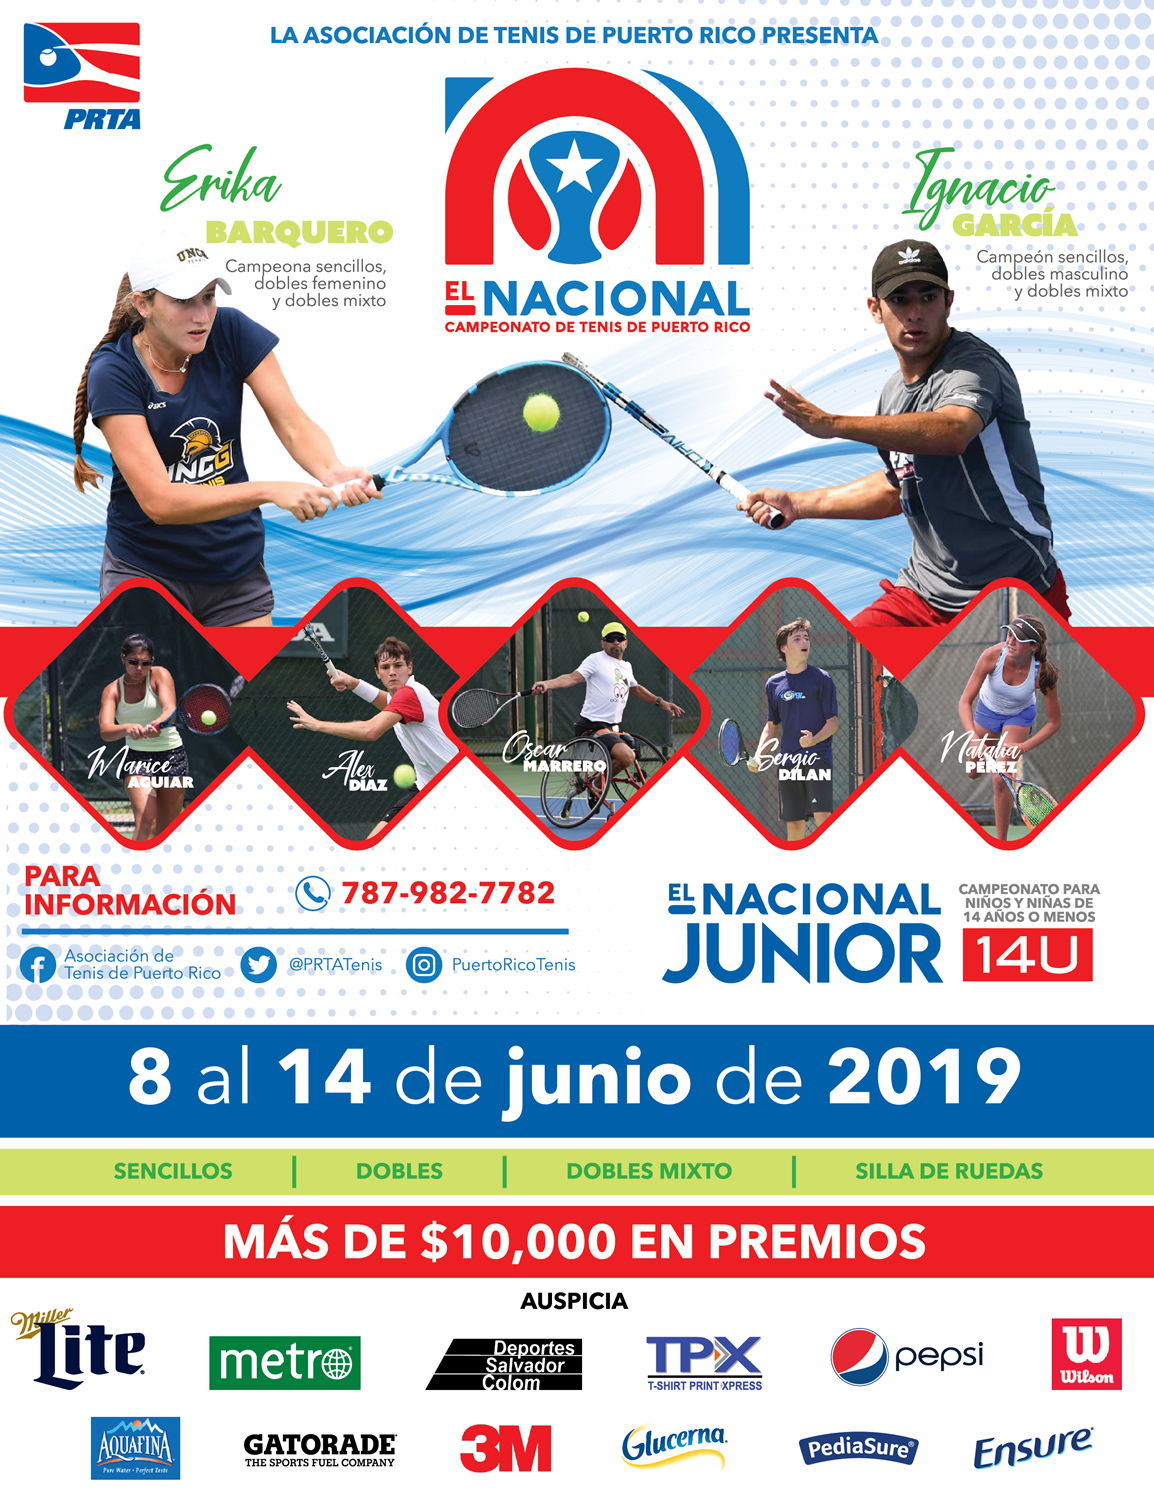 2019_02_27_Flyer_EL_NACIONAL_2019_copy_TP